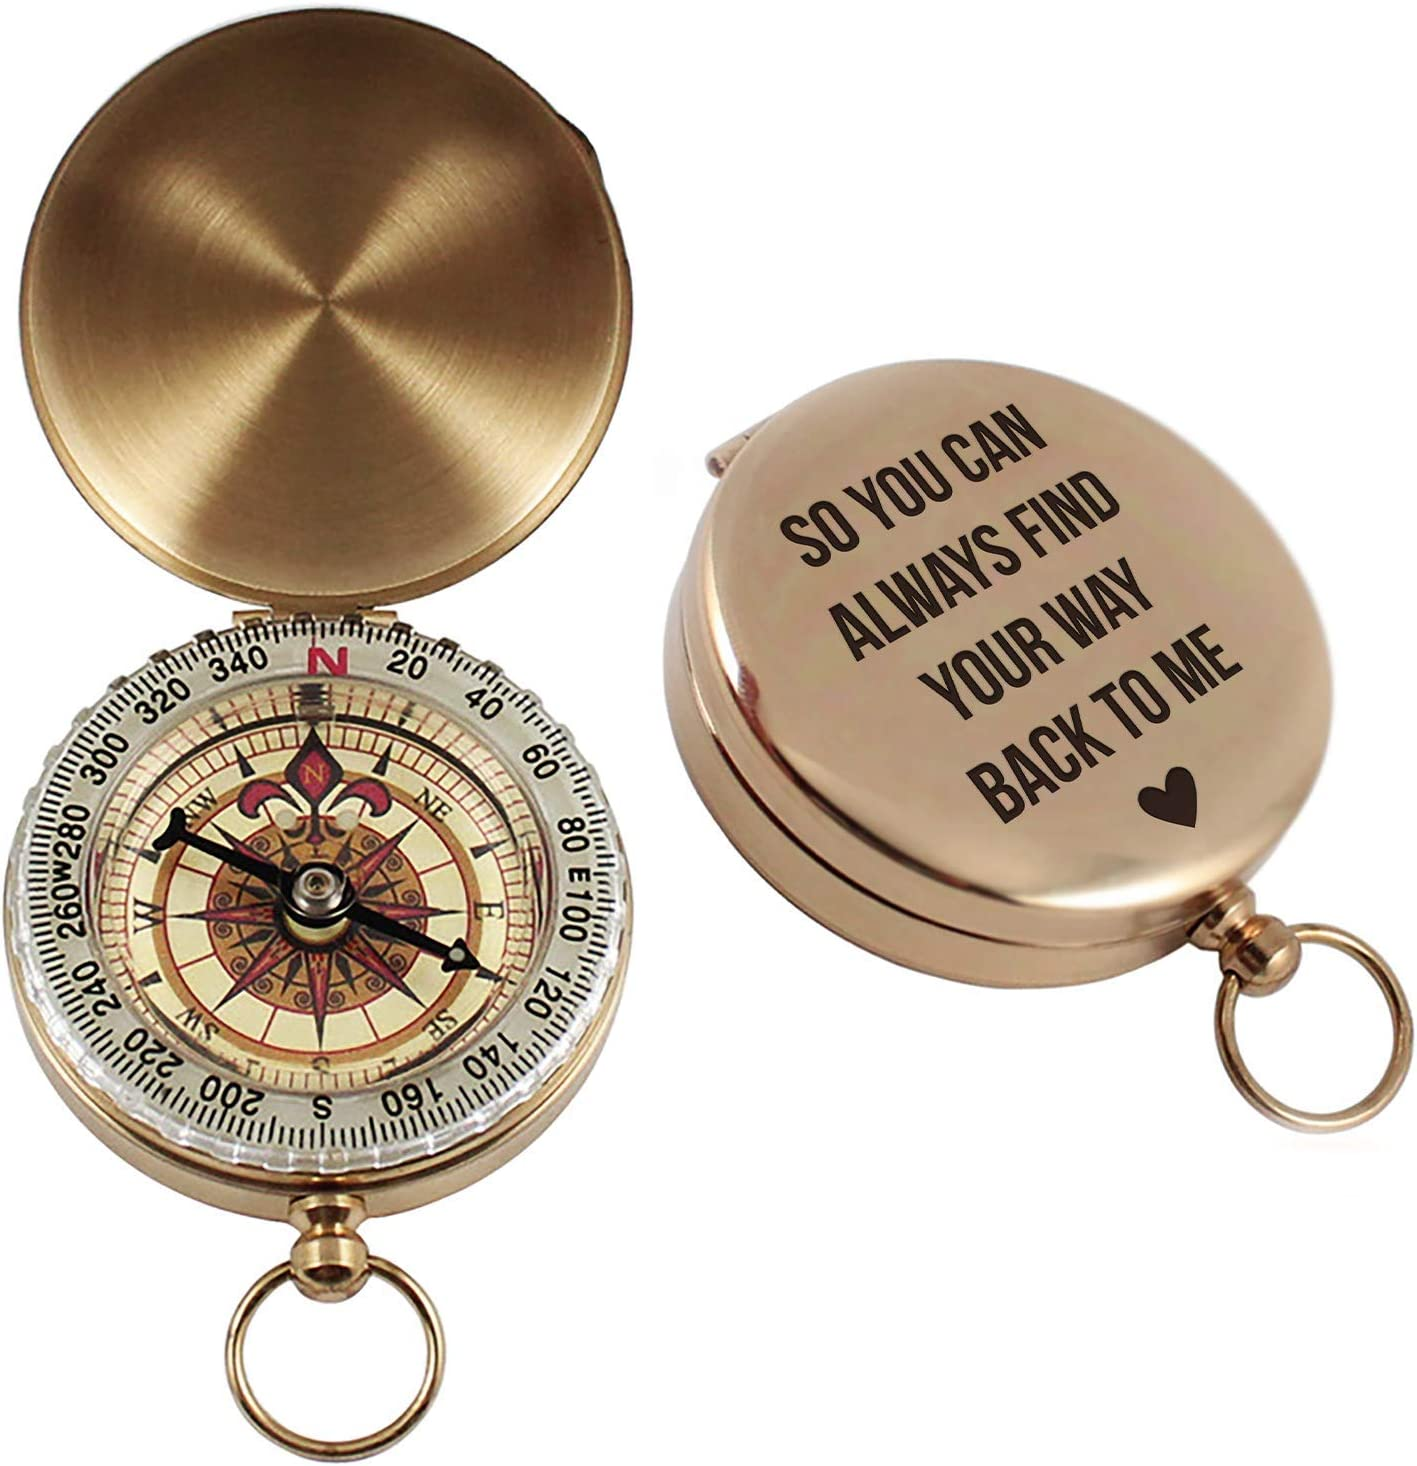 Aurelie & George Engraved Compass - Custom Engagement, Anniversary, Wedding Gift for Him - Gift for Husband, Fiance, or Boyfriend - Working Compass in a Gift Box